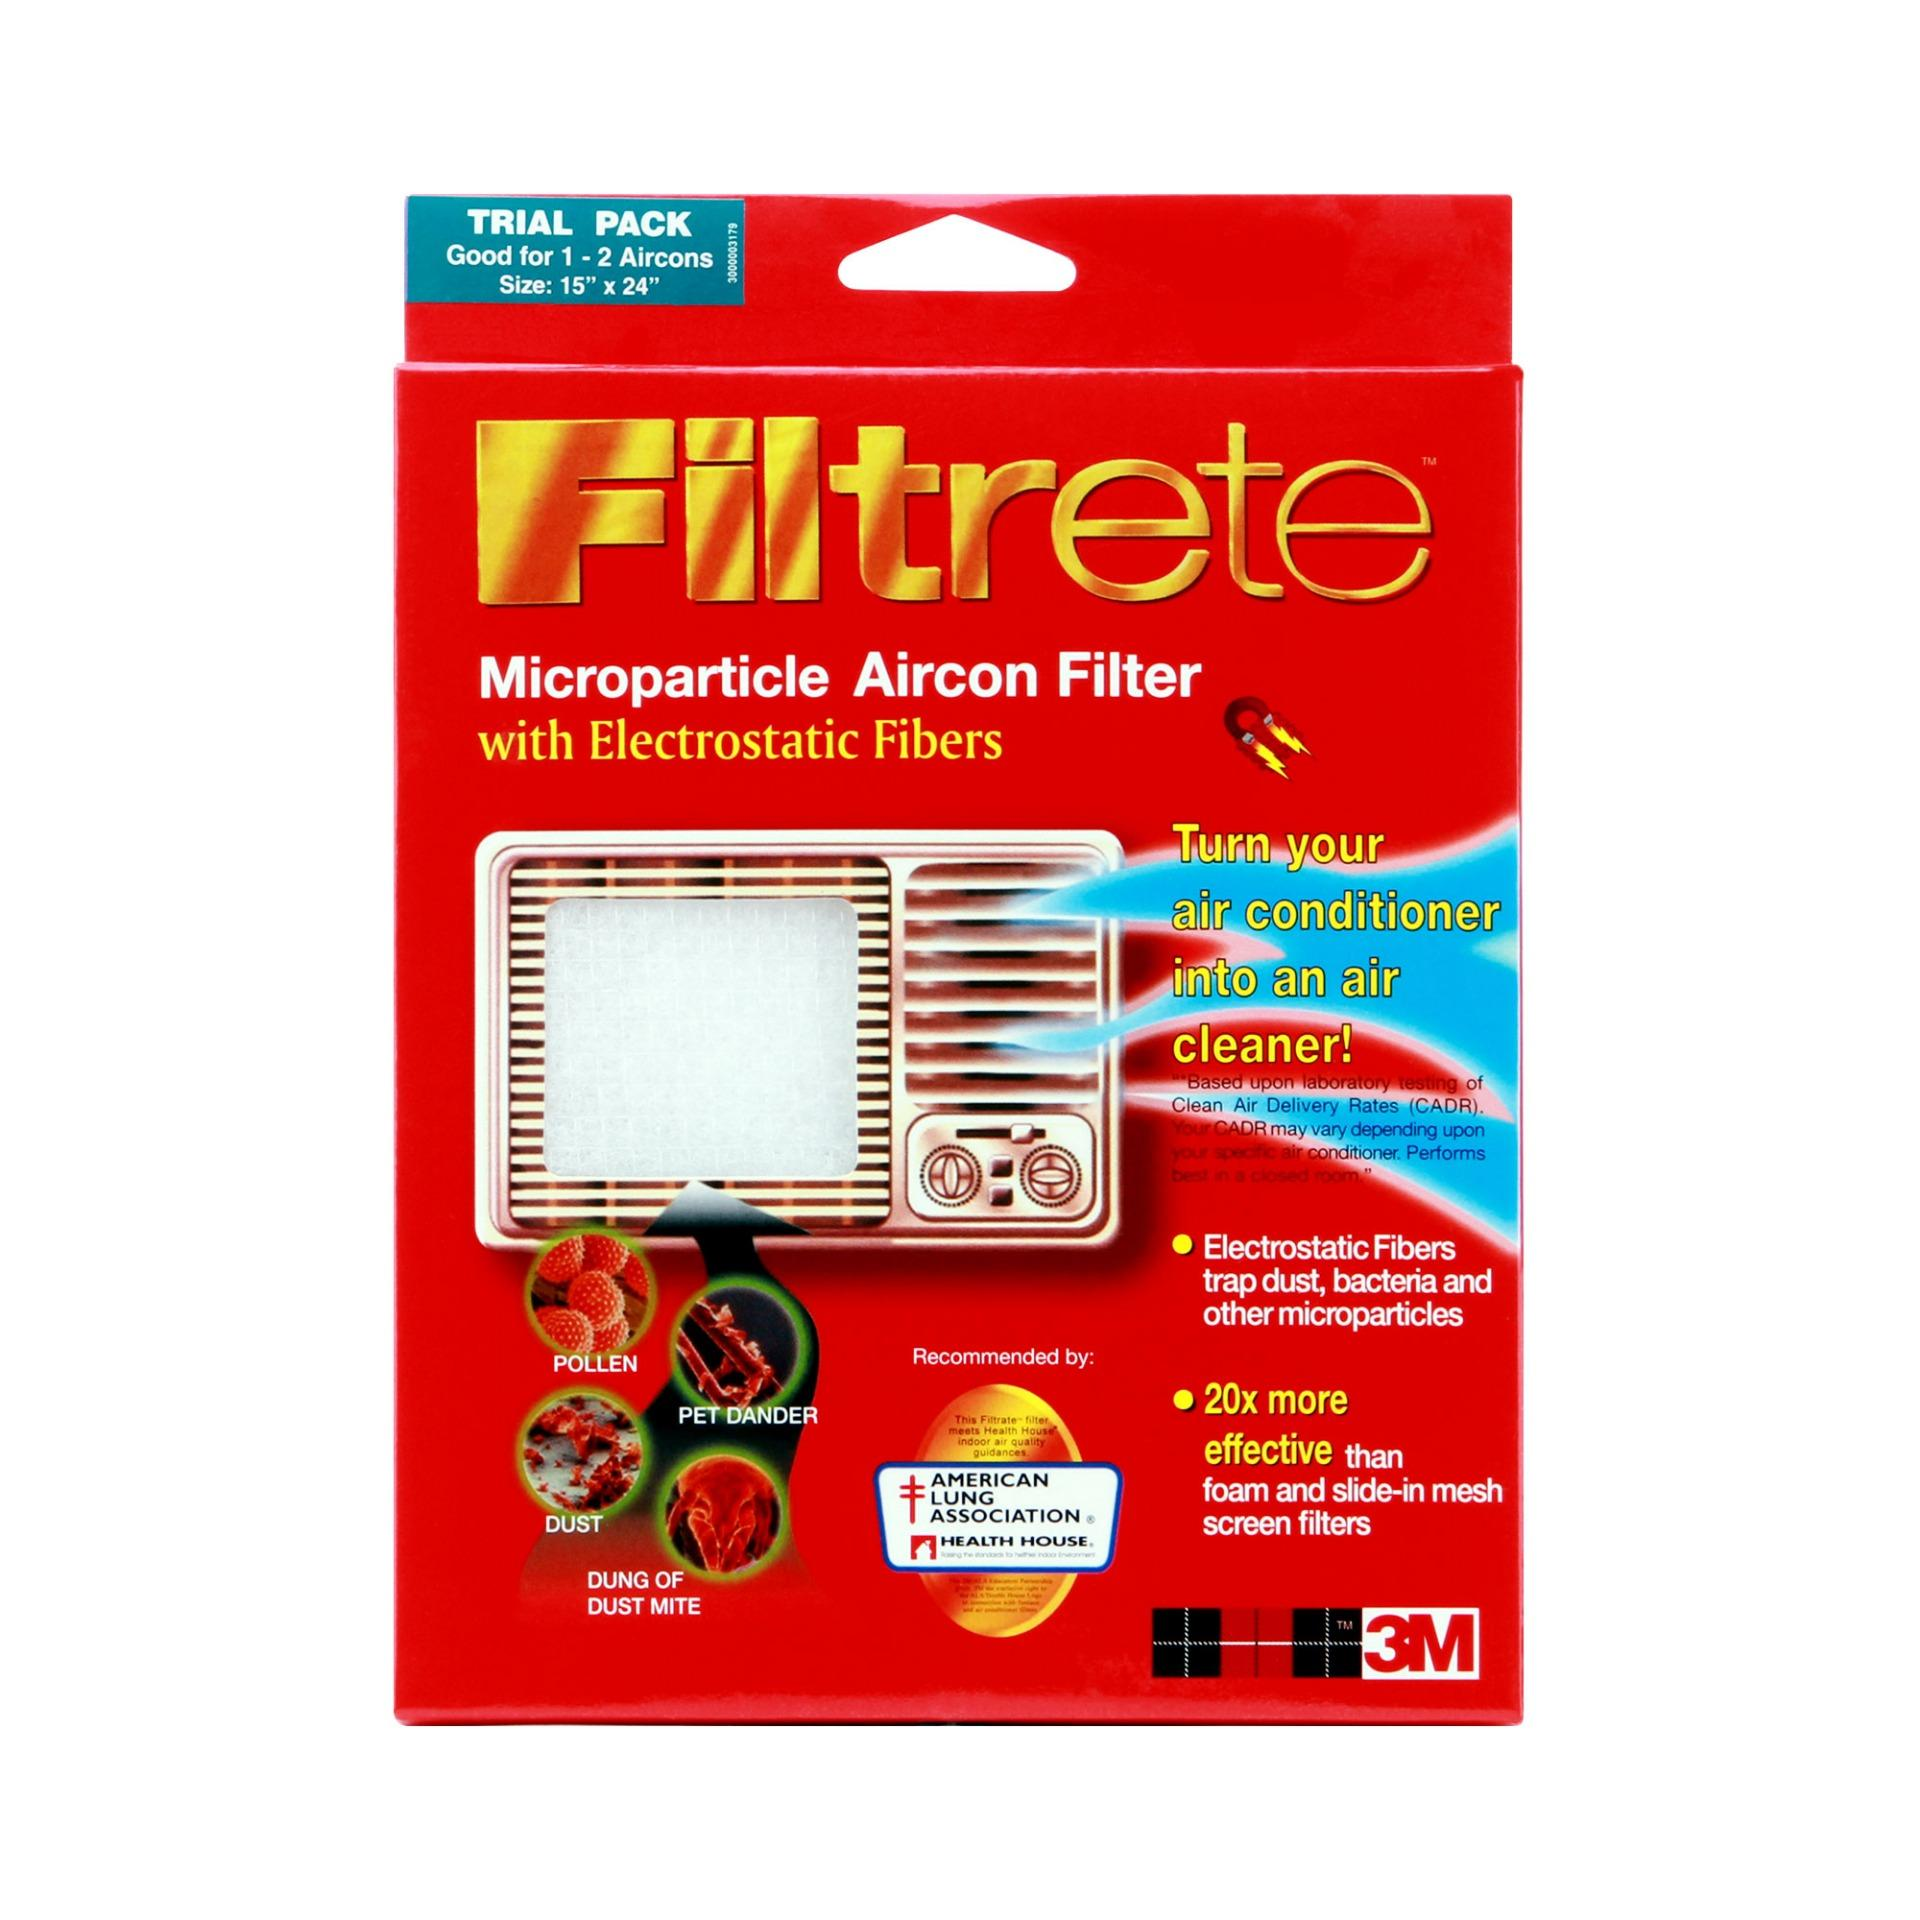 Aircon Parts For Sale Air Conditioner Prices Brands How To Recharge Your Central Accessories 3m Filtrete Filter Trial Pack